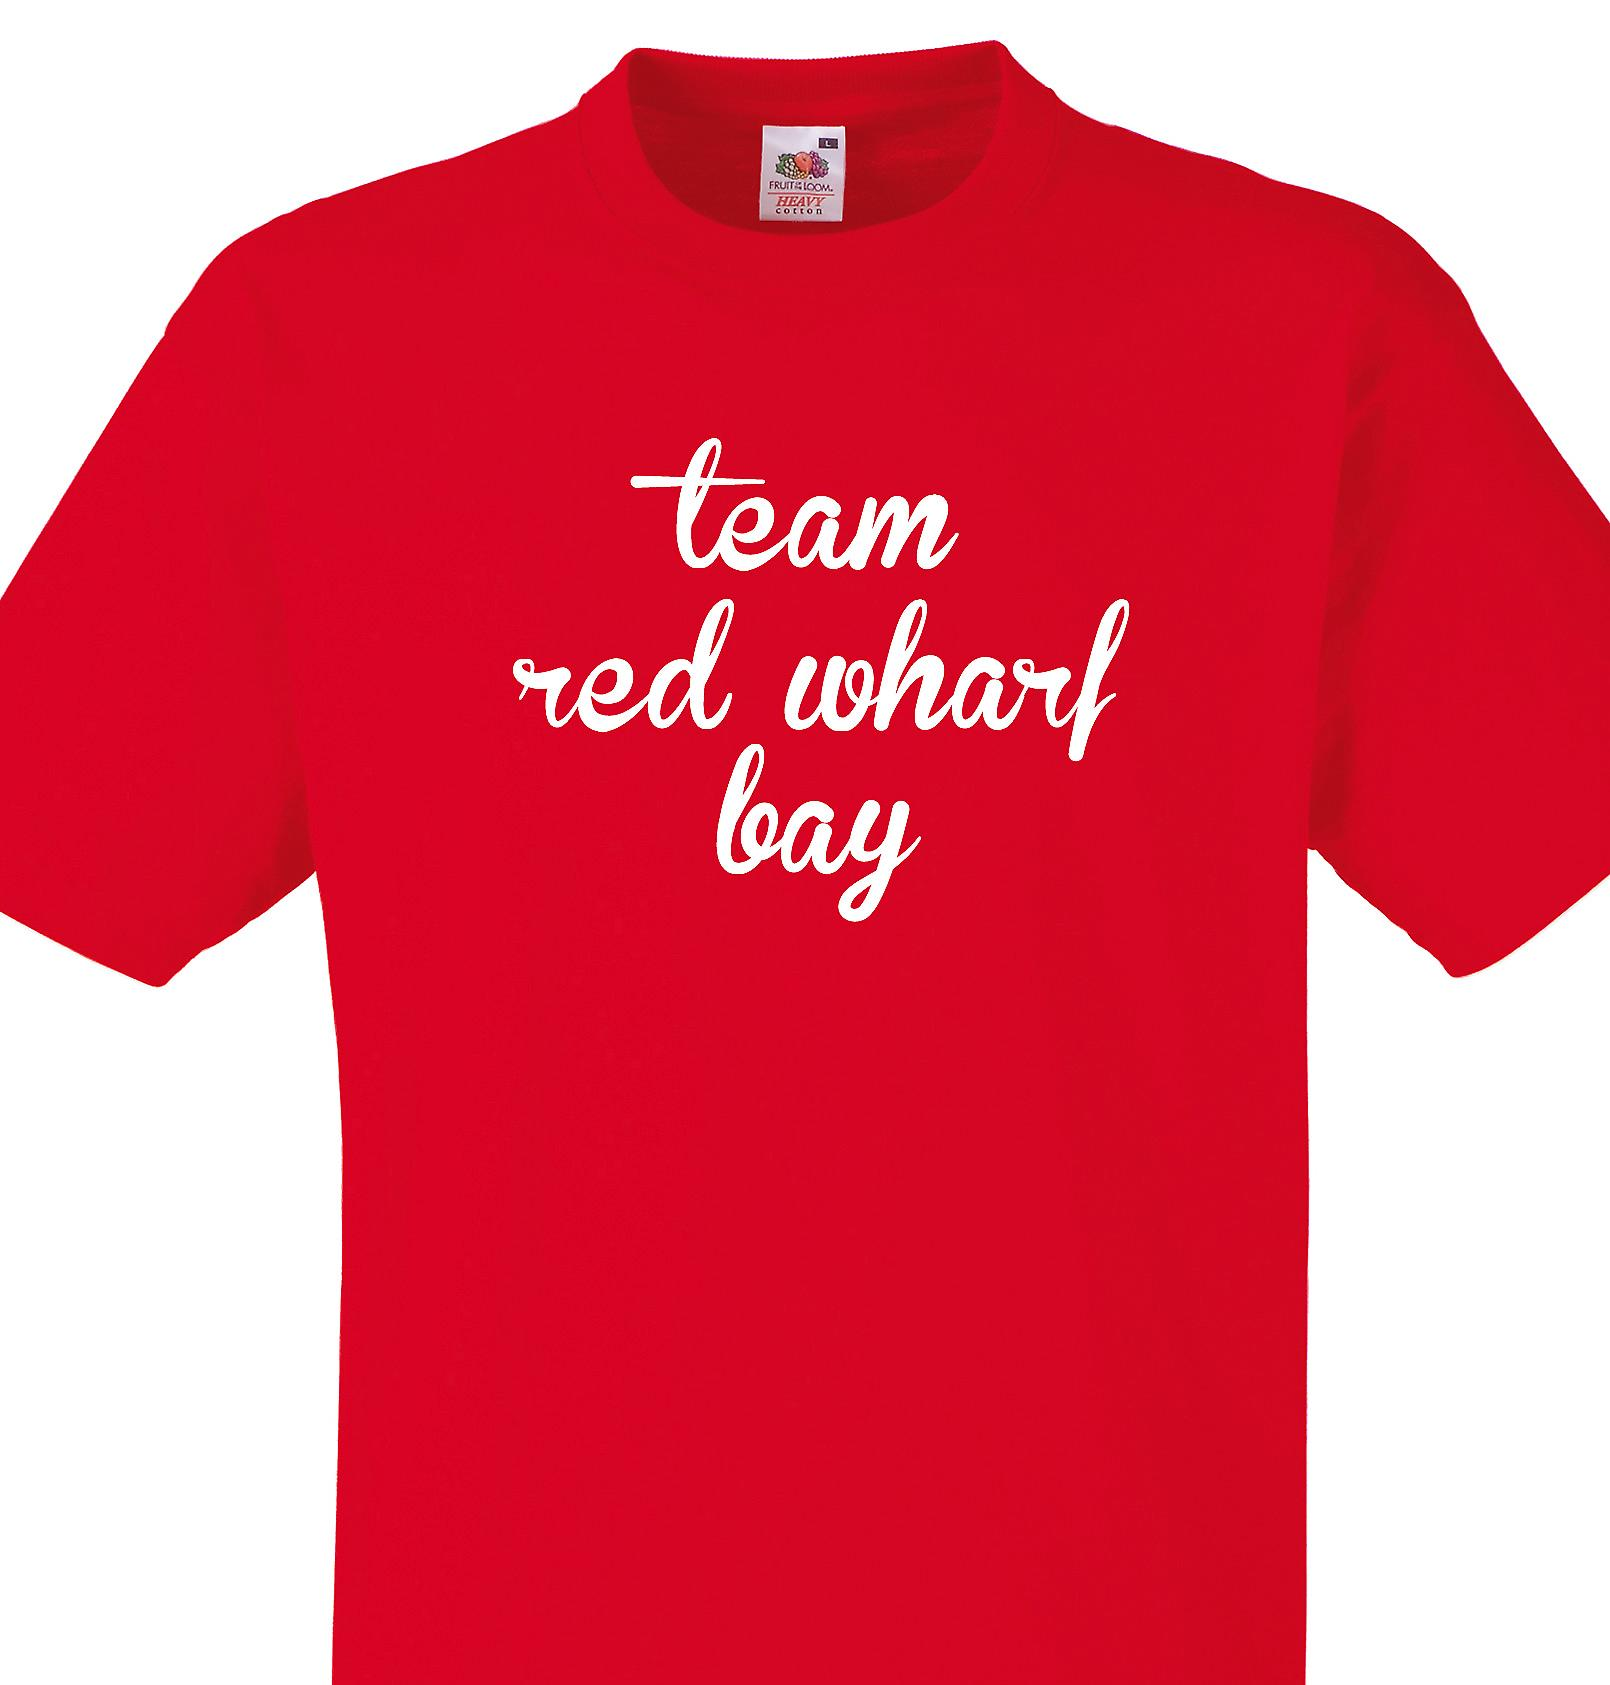 Team Red wharf bay Red T shirt